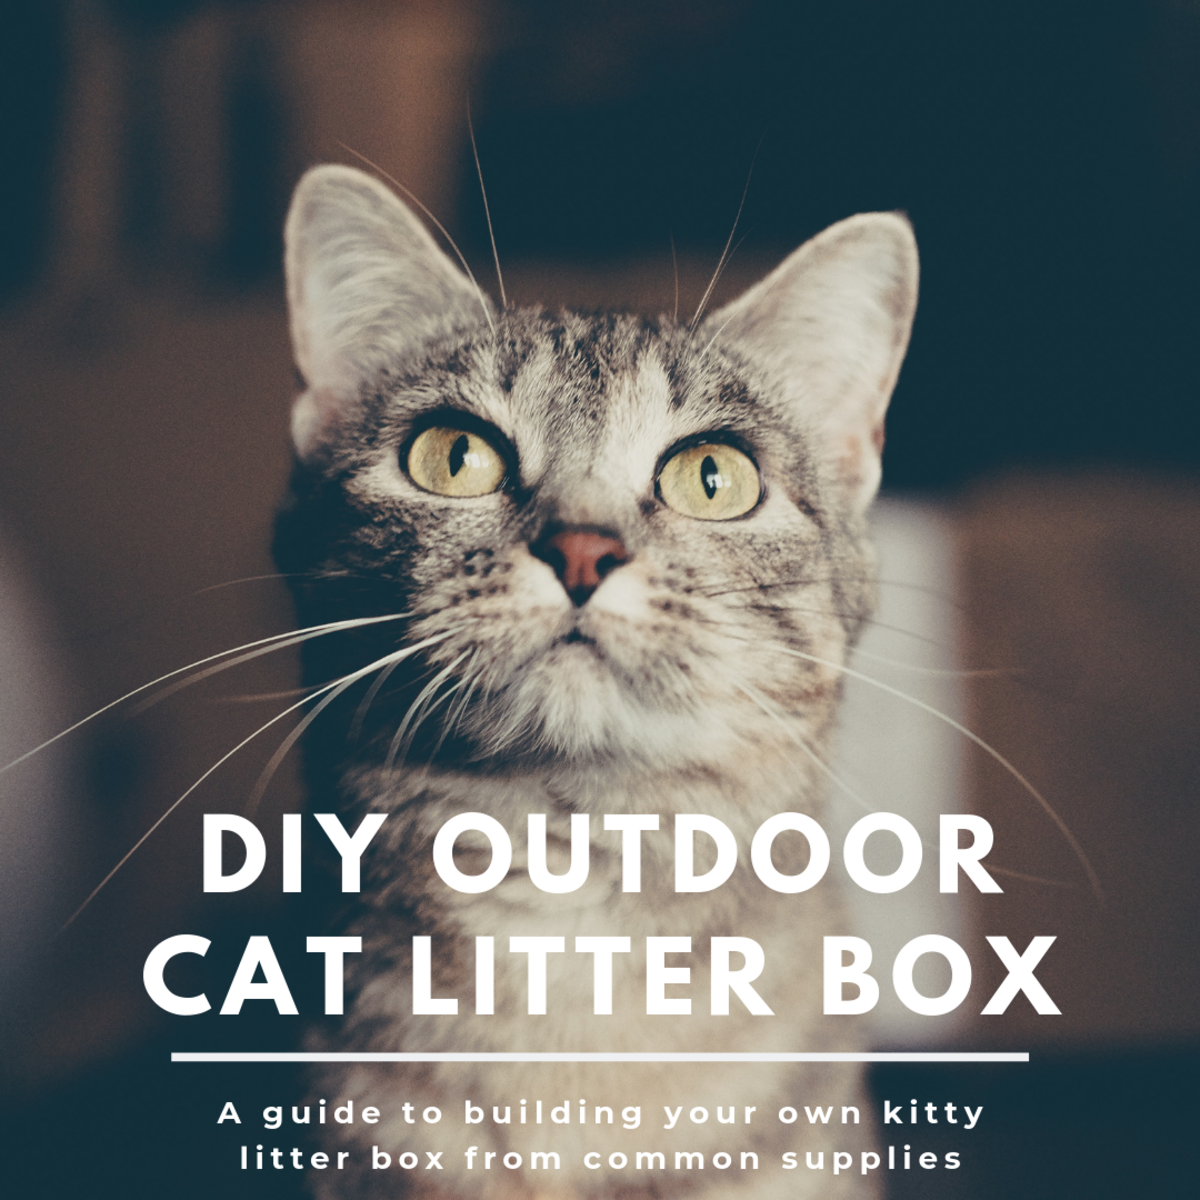 How to Build an Outdoor Cat Litter Box